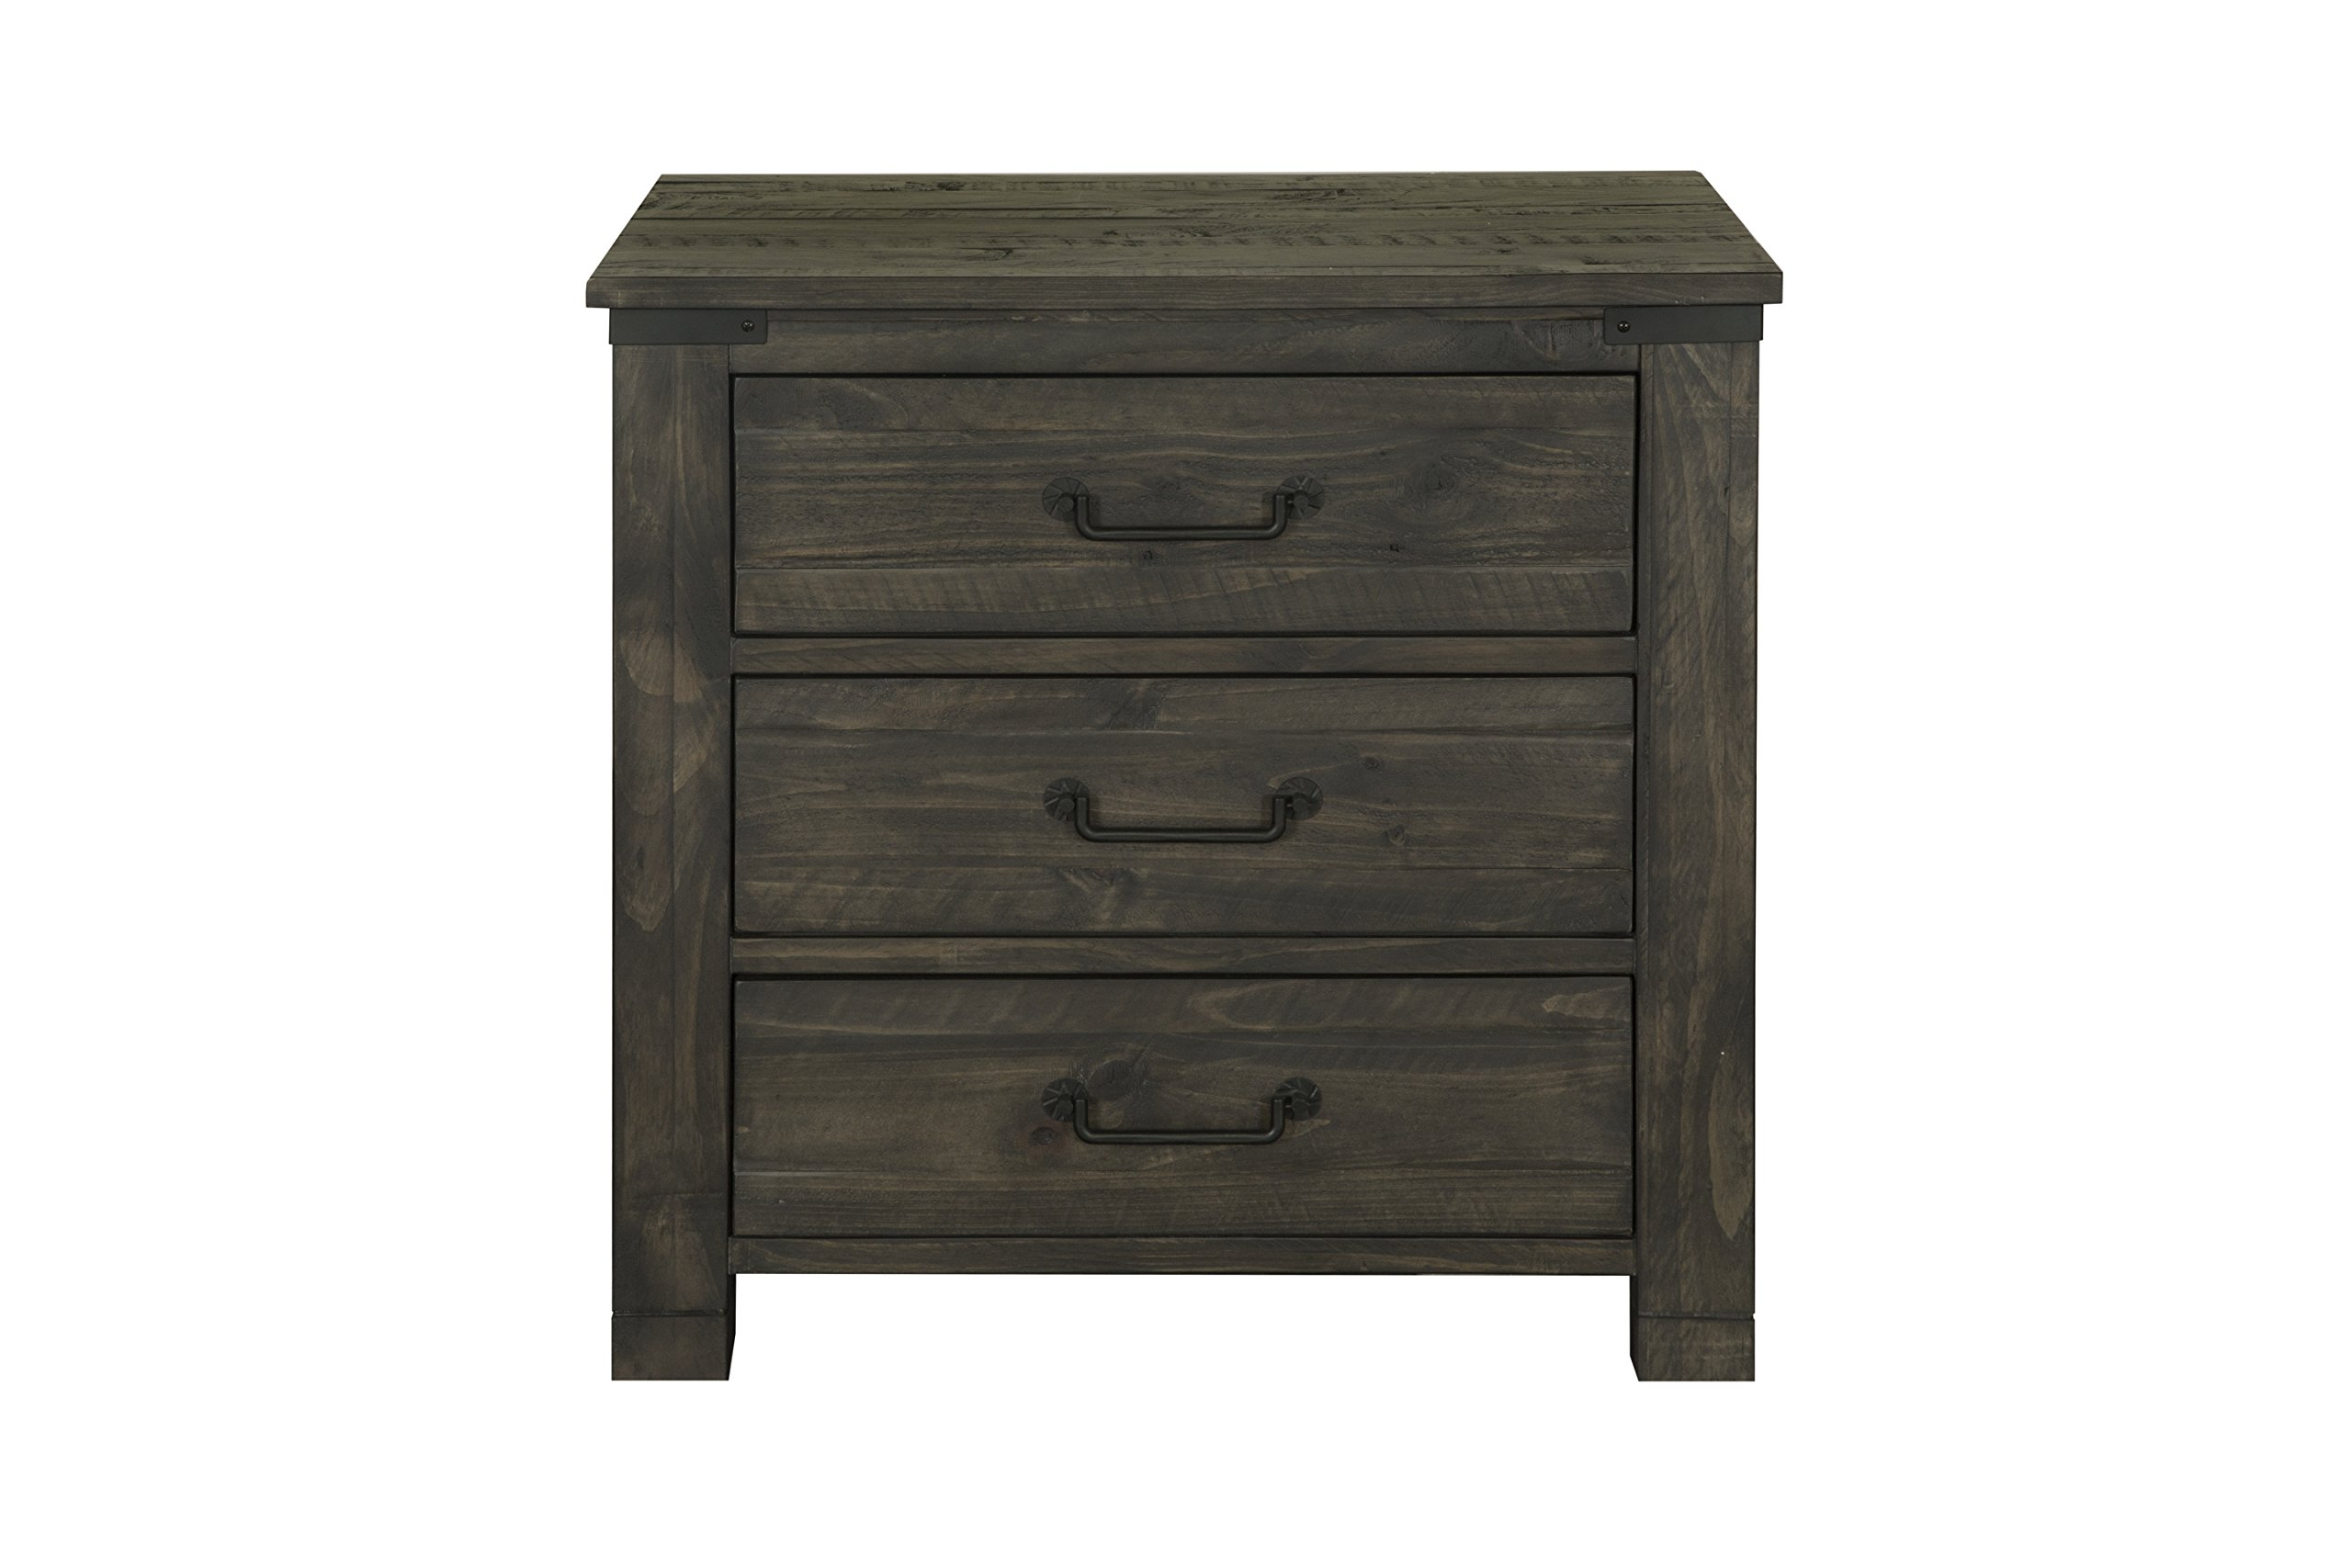 Magnussen B3804-01 Abington 3 Drawer Nightstand Weathered Charcoal - Constructed using solid wood and Select hardwood veneers increases strength and durability, while ensuring longevity Multi-step finishing process achieves a durable, high Quality Finish that enhances the natural beauty of the wood Features 3 spacious drawers including a felt lined Top drawer - bedroom-furniture, nightstands, bedroom - 81NyA97VxbL -